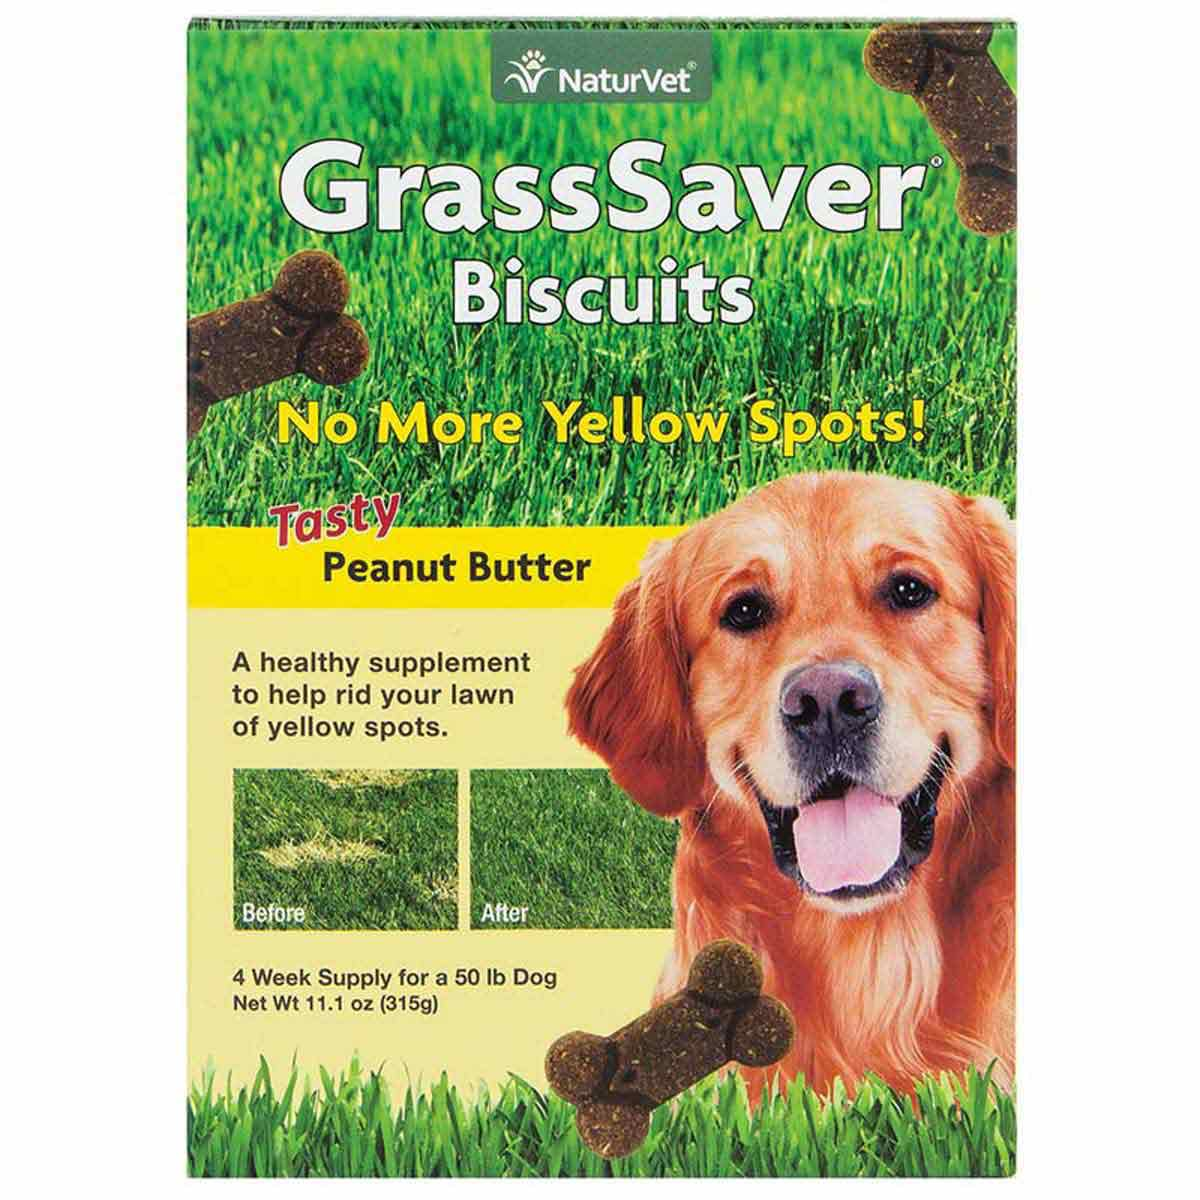 NaturVet GrassSaver Biscuits for Dogs - Peanut Butter Flavor 11.1 oz